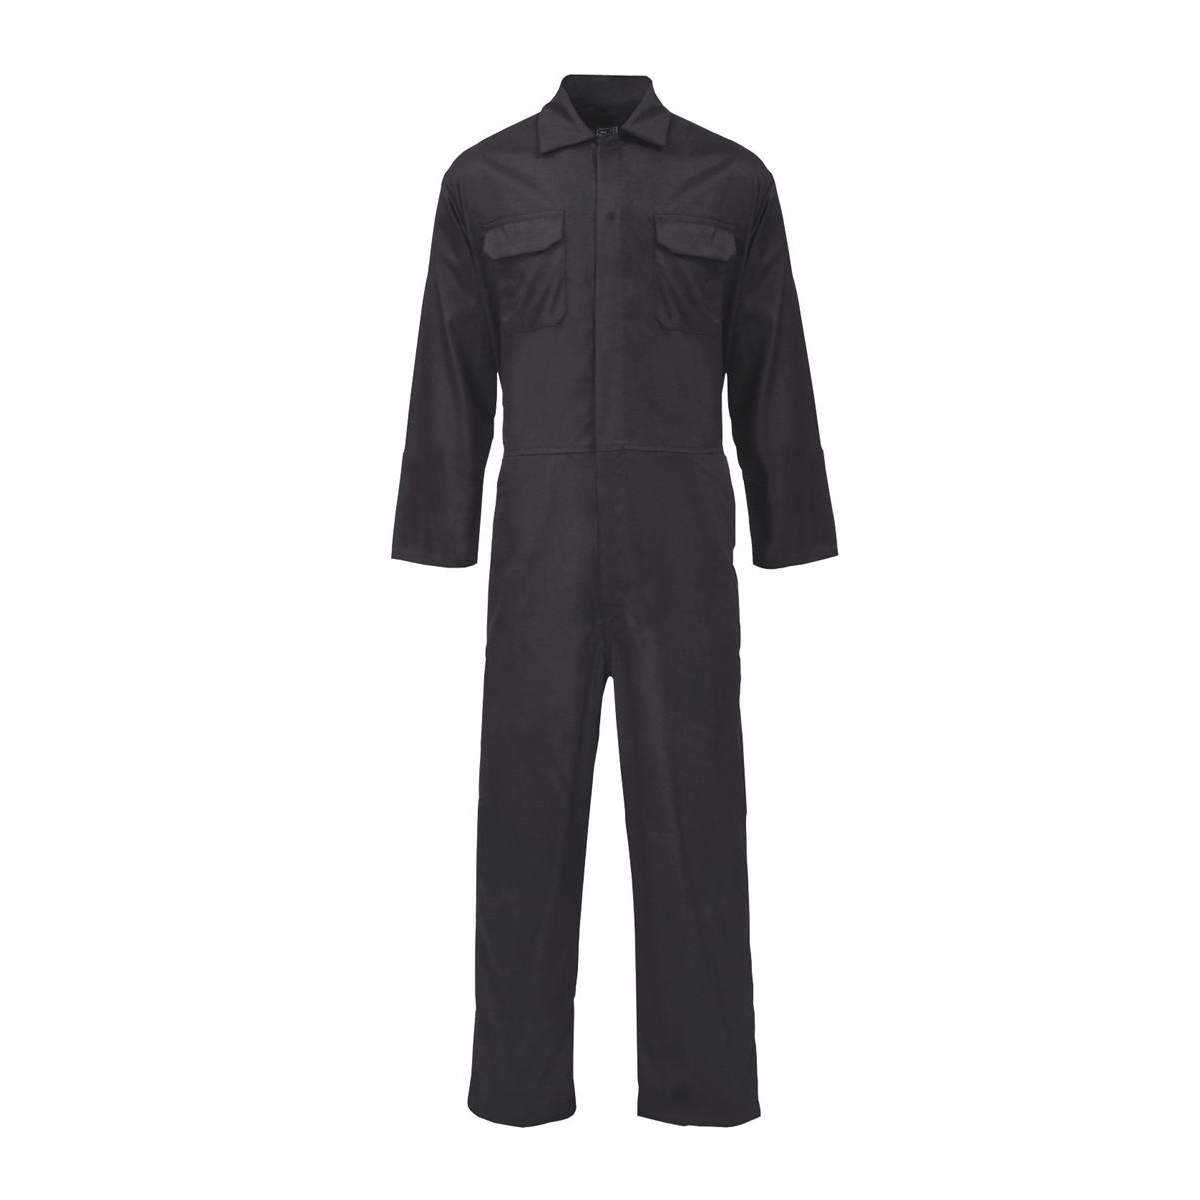 Coverall Basic with Popper Front Opening Polycotton XXLarge Black Approx 3 Day Leadtime